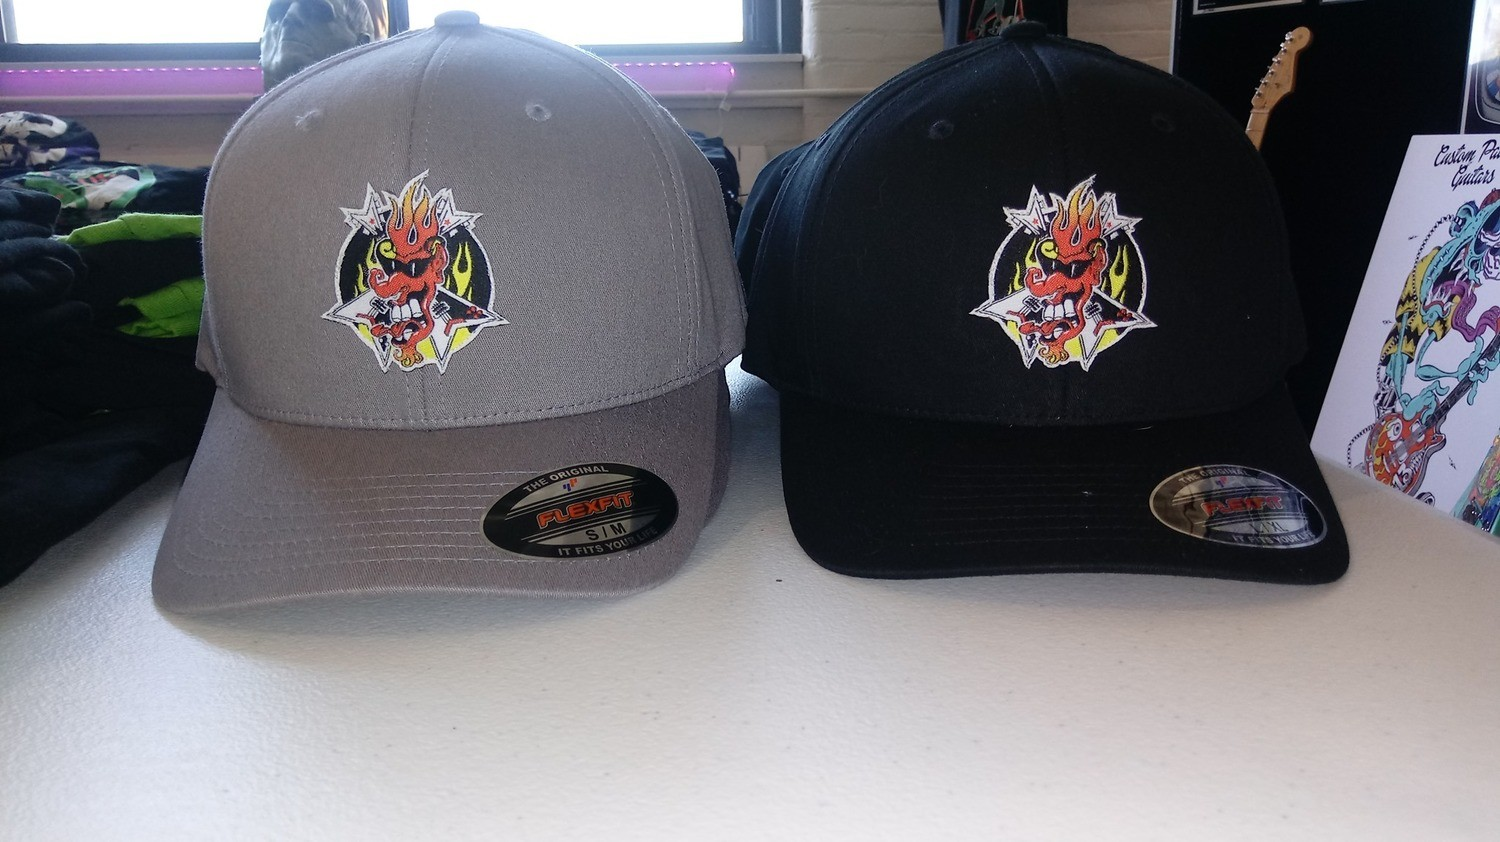 Mr Flame Hats